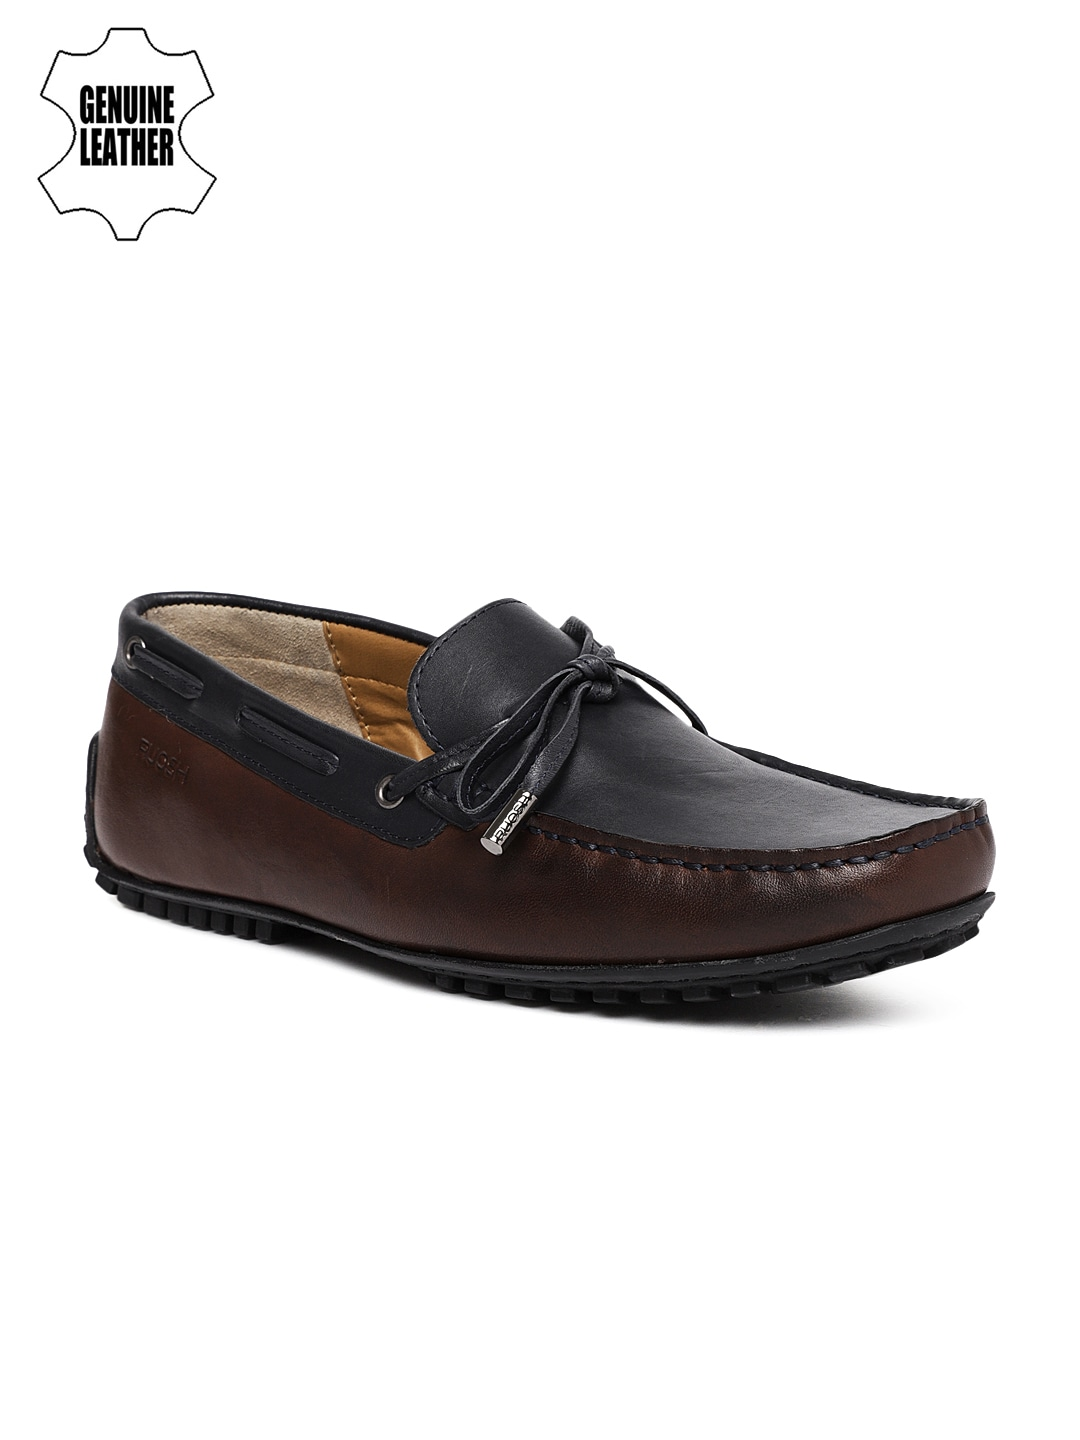 Navy Blue & Brown Genuine Leather Smart Casual Driving Shoes